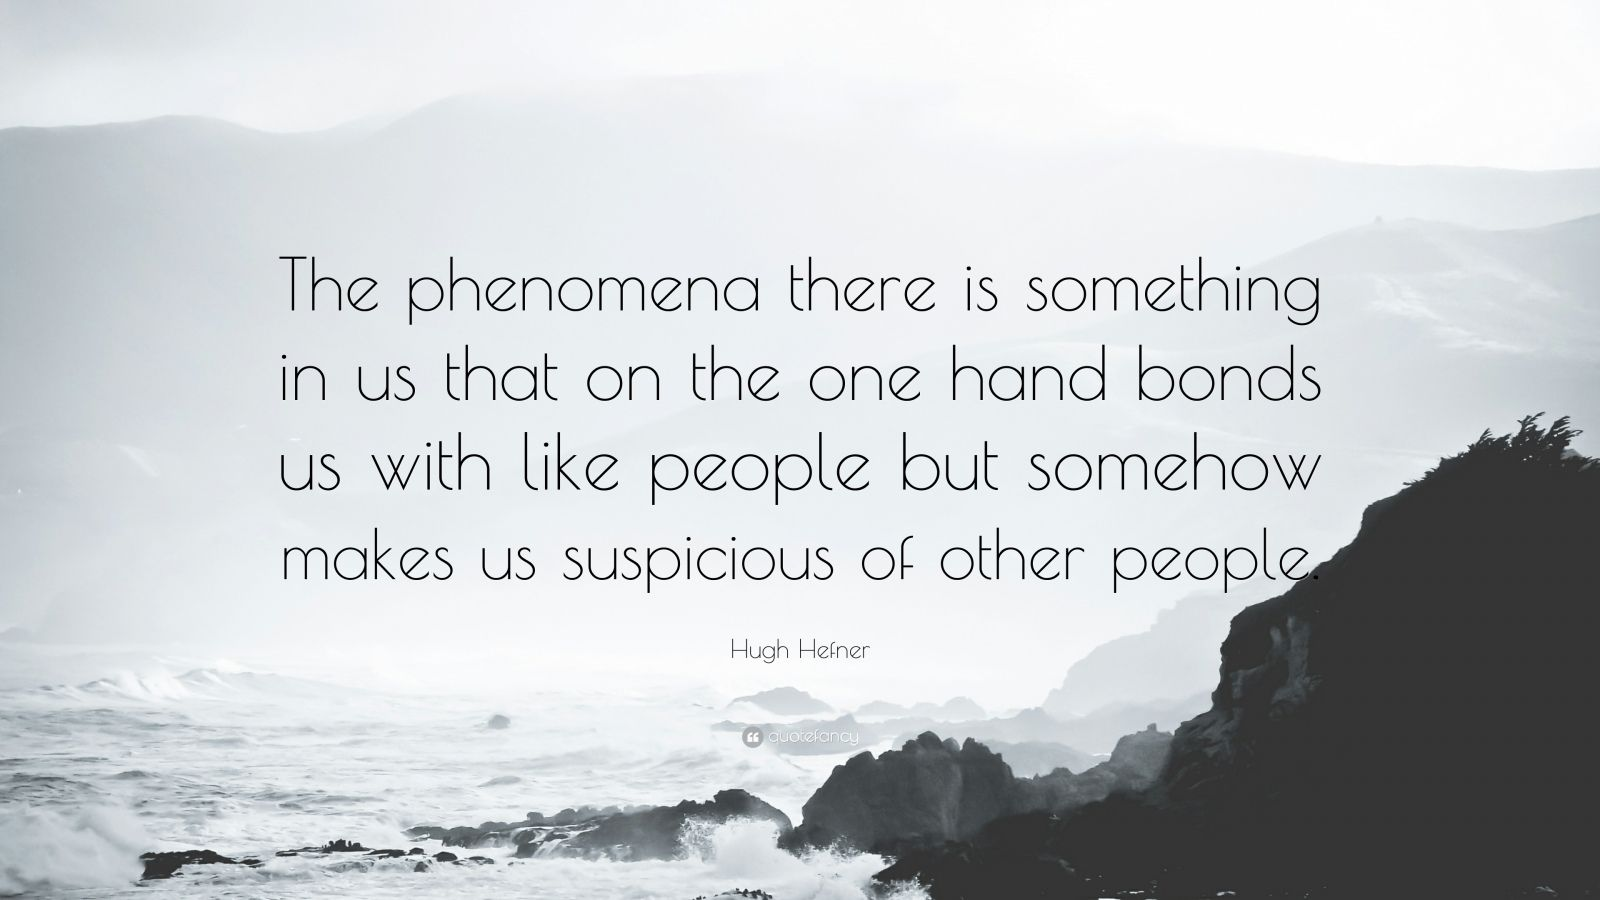 """Hugh Hefner Quote: """"The phenomena there is something in us that on the one hand bonds us with like people but somehow makes us suspicious of other people."""""""